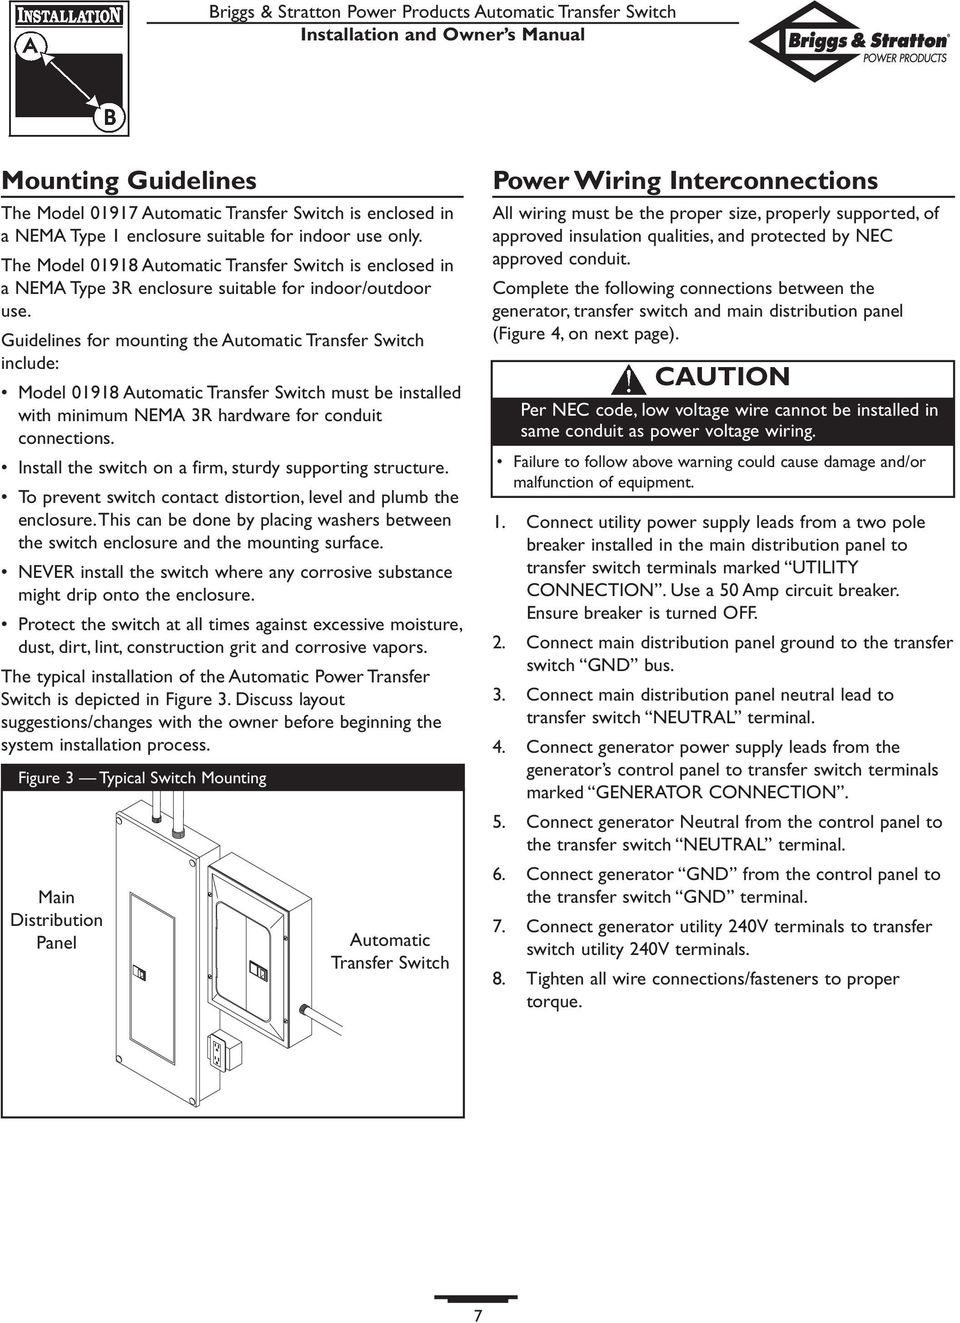 Guidelines for mounting the Automatic Transfer Switch include: Model 01918 Automatic Transfer Switch must be installed with minimum NEMA 3R hardware for conduit connections.